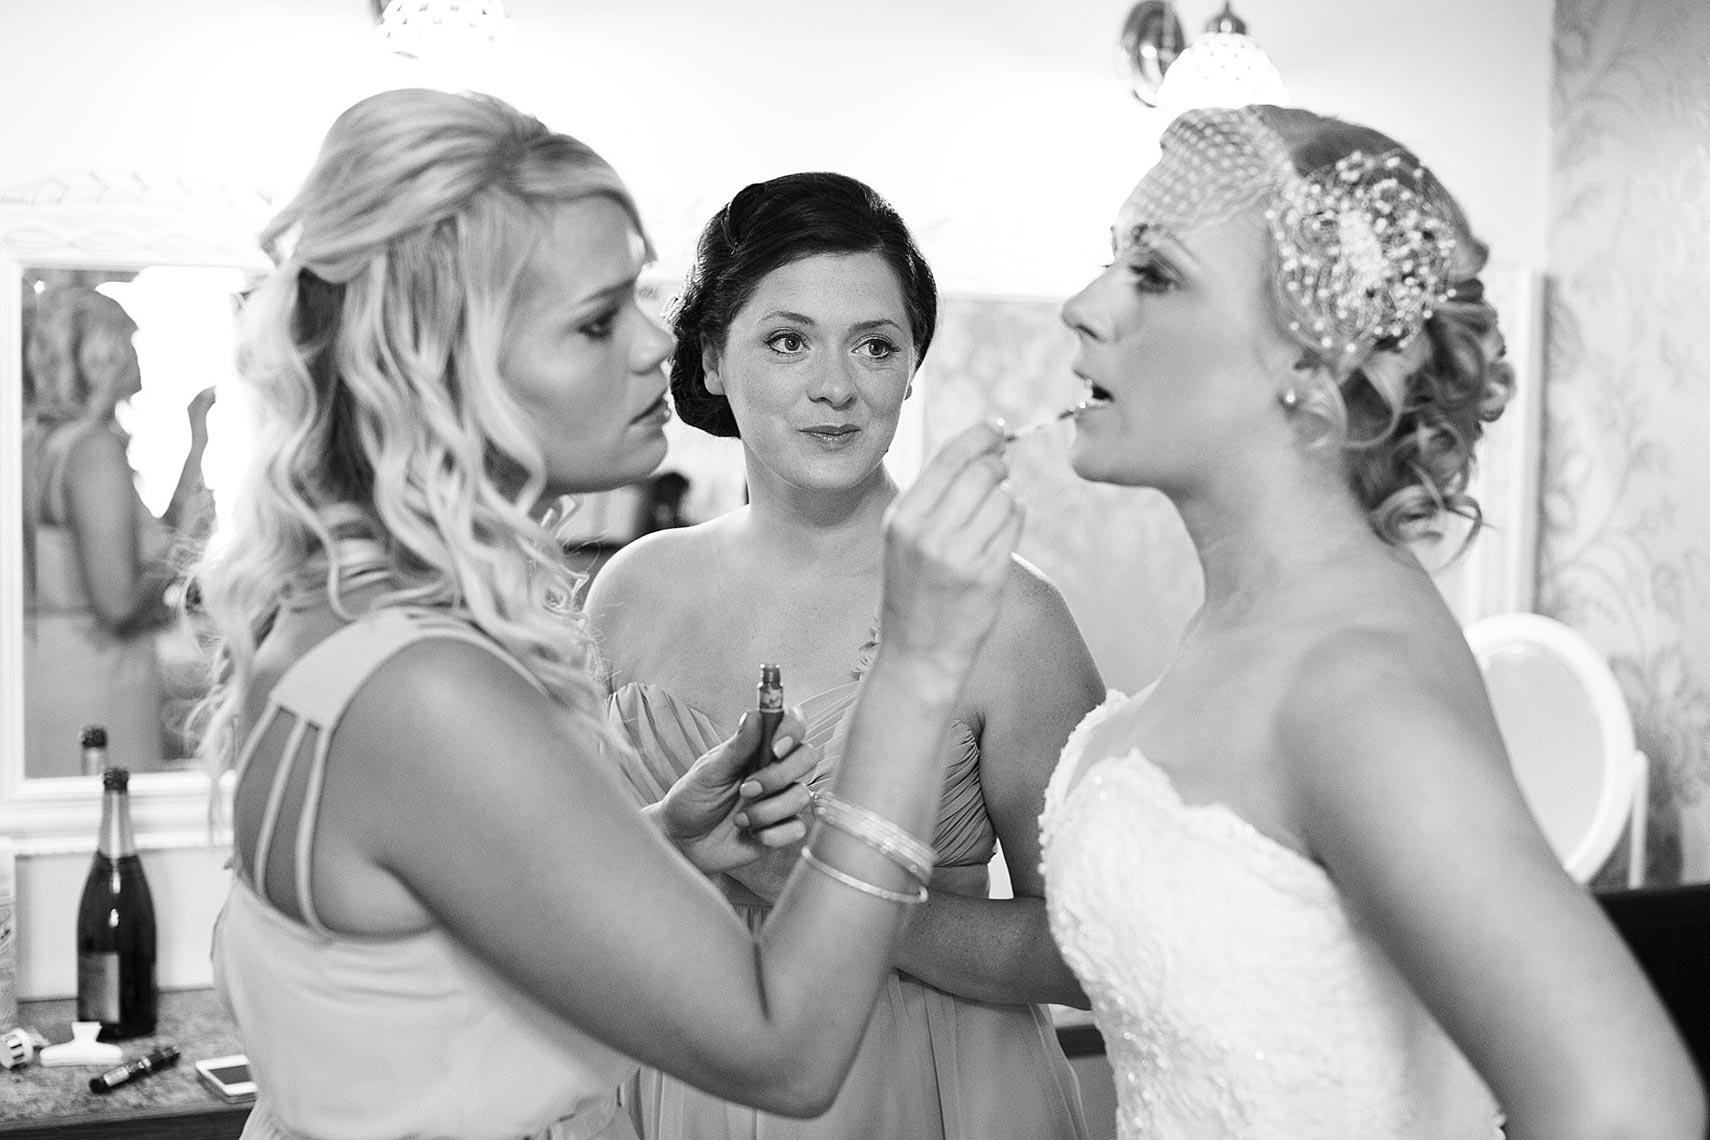 reportage-wedding-photographer-Kent.jpg